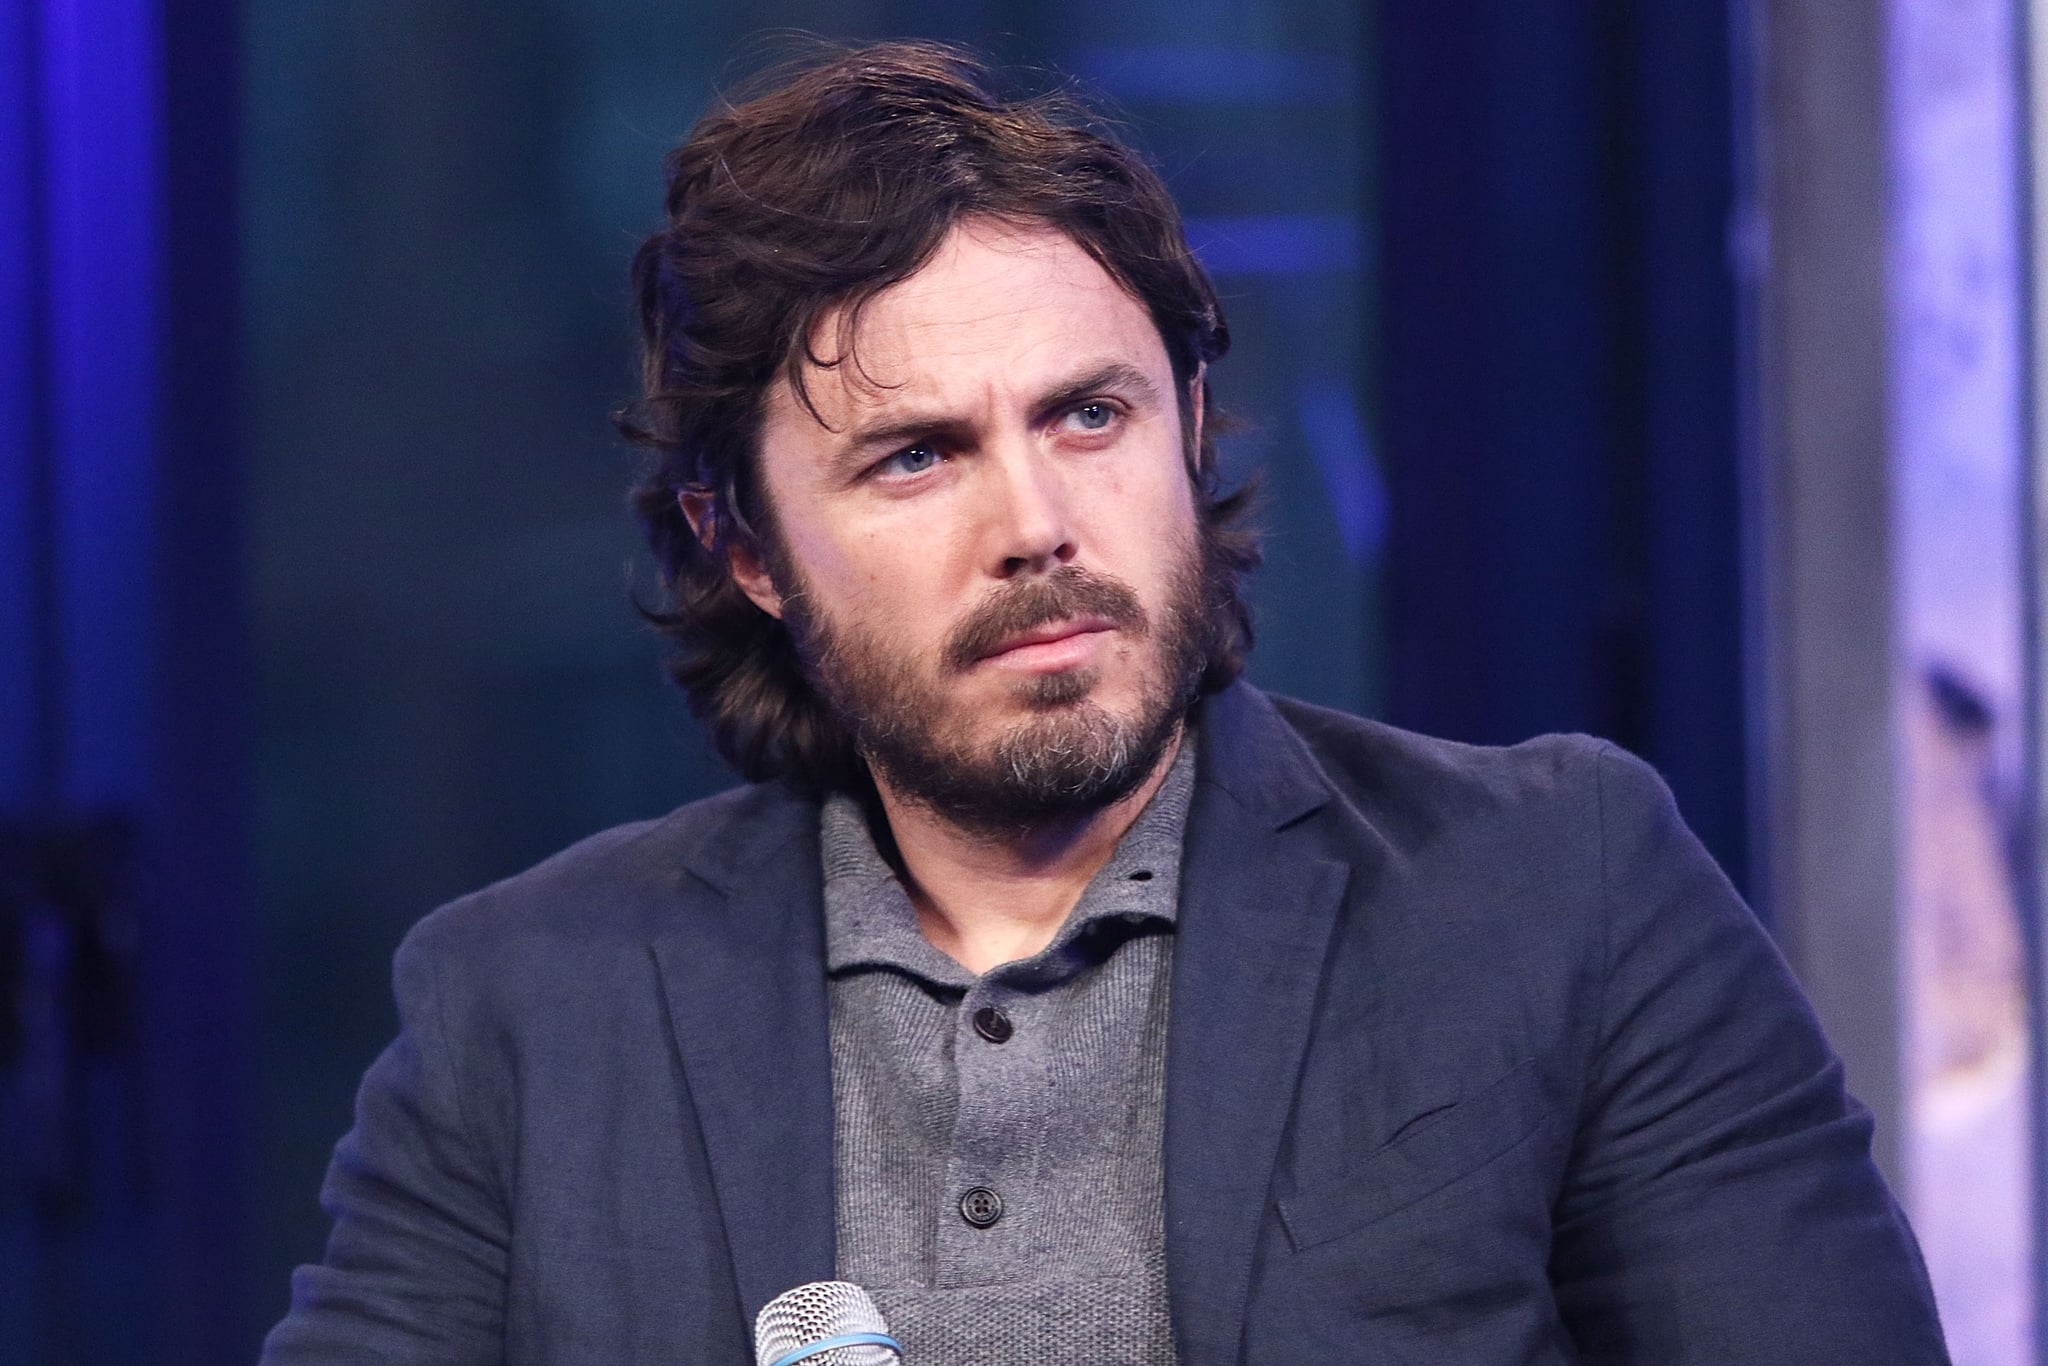 casey affleck sexual assault information popsugar celebrity uk share this link